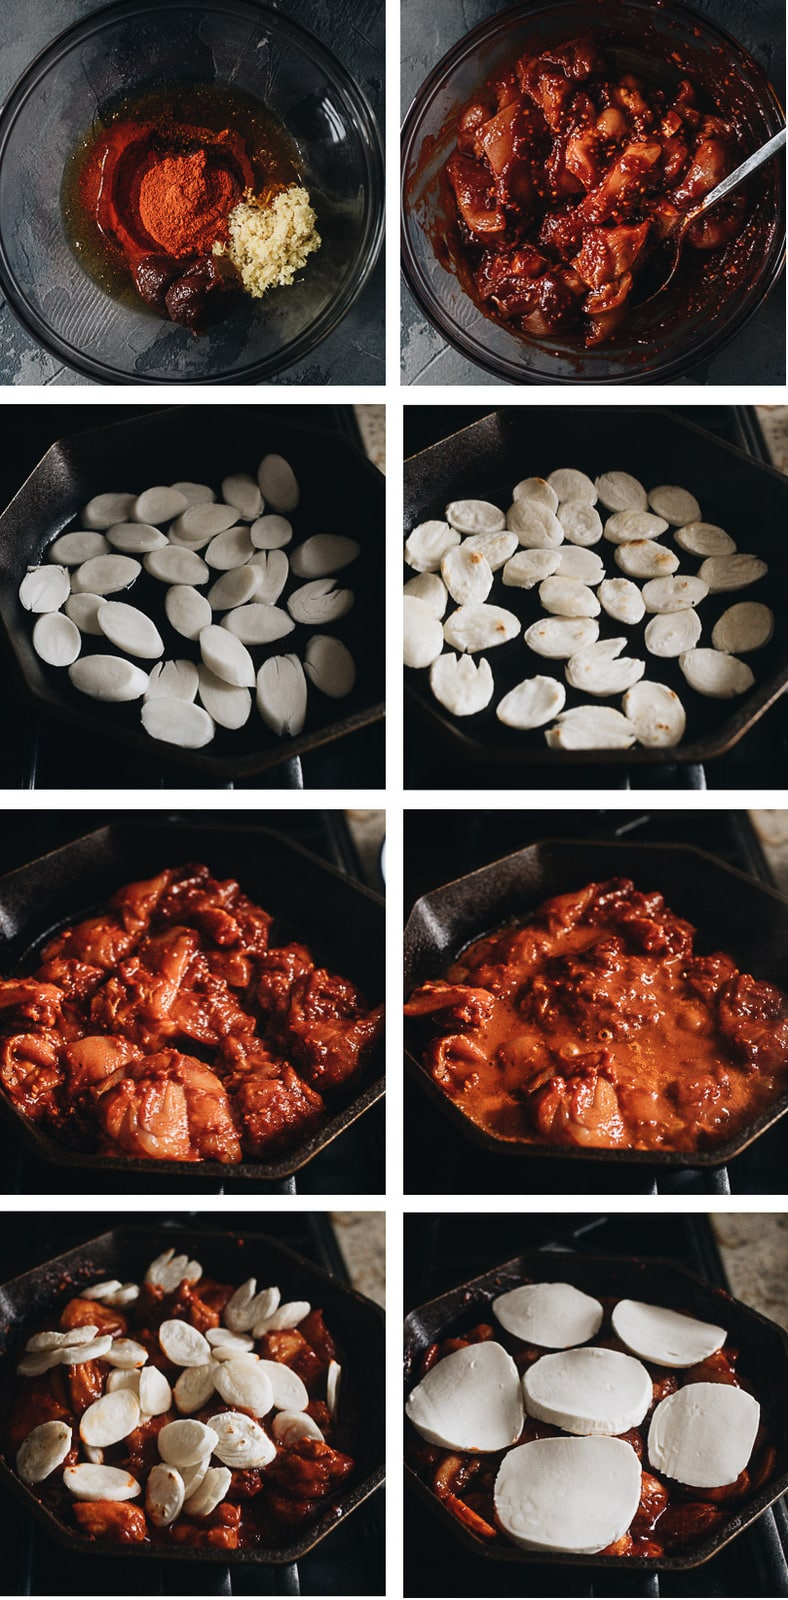 Cooking Korean fire chicken step-by-step